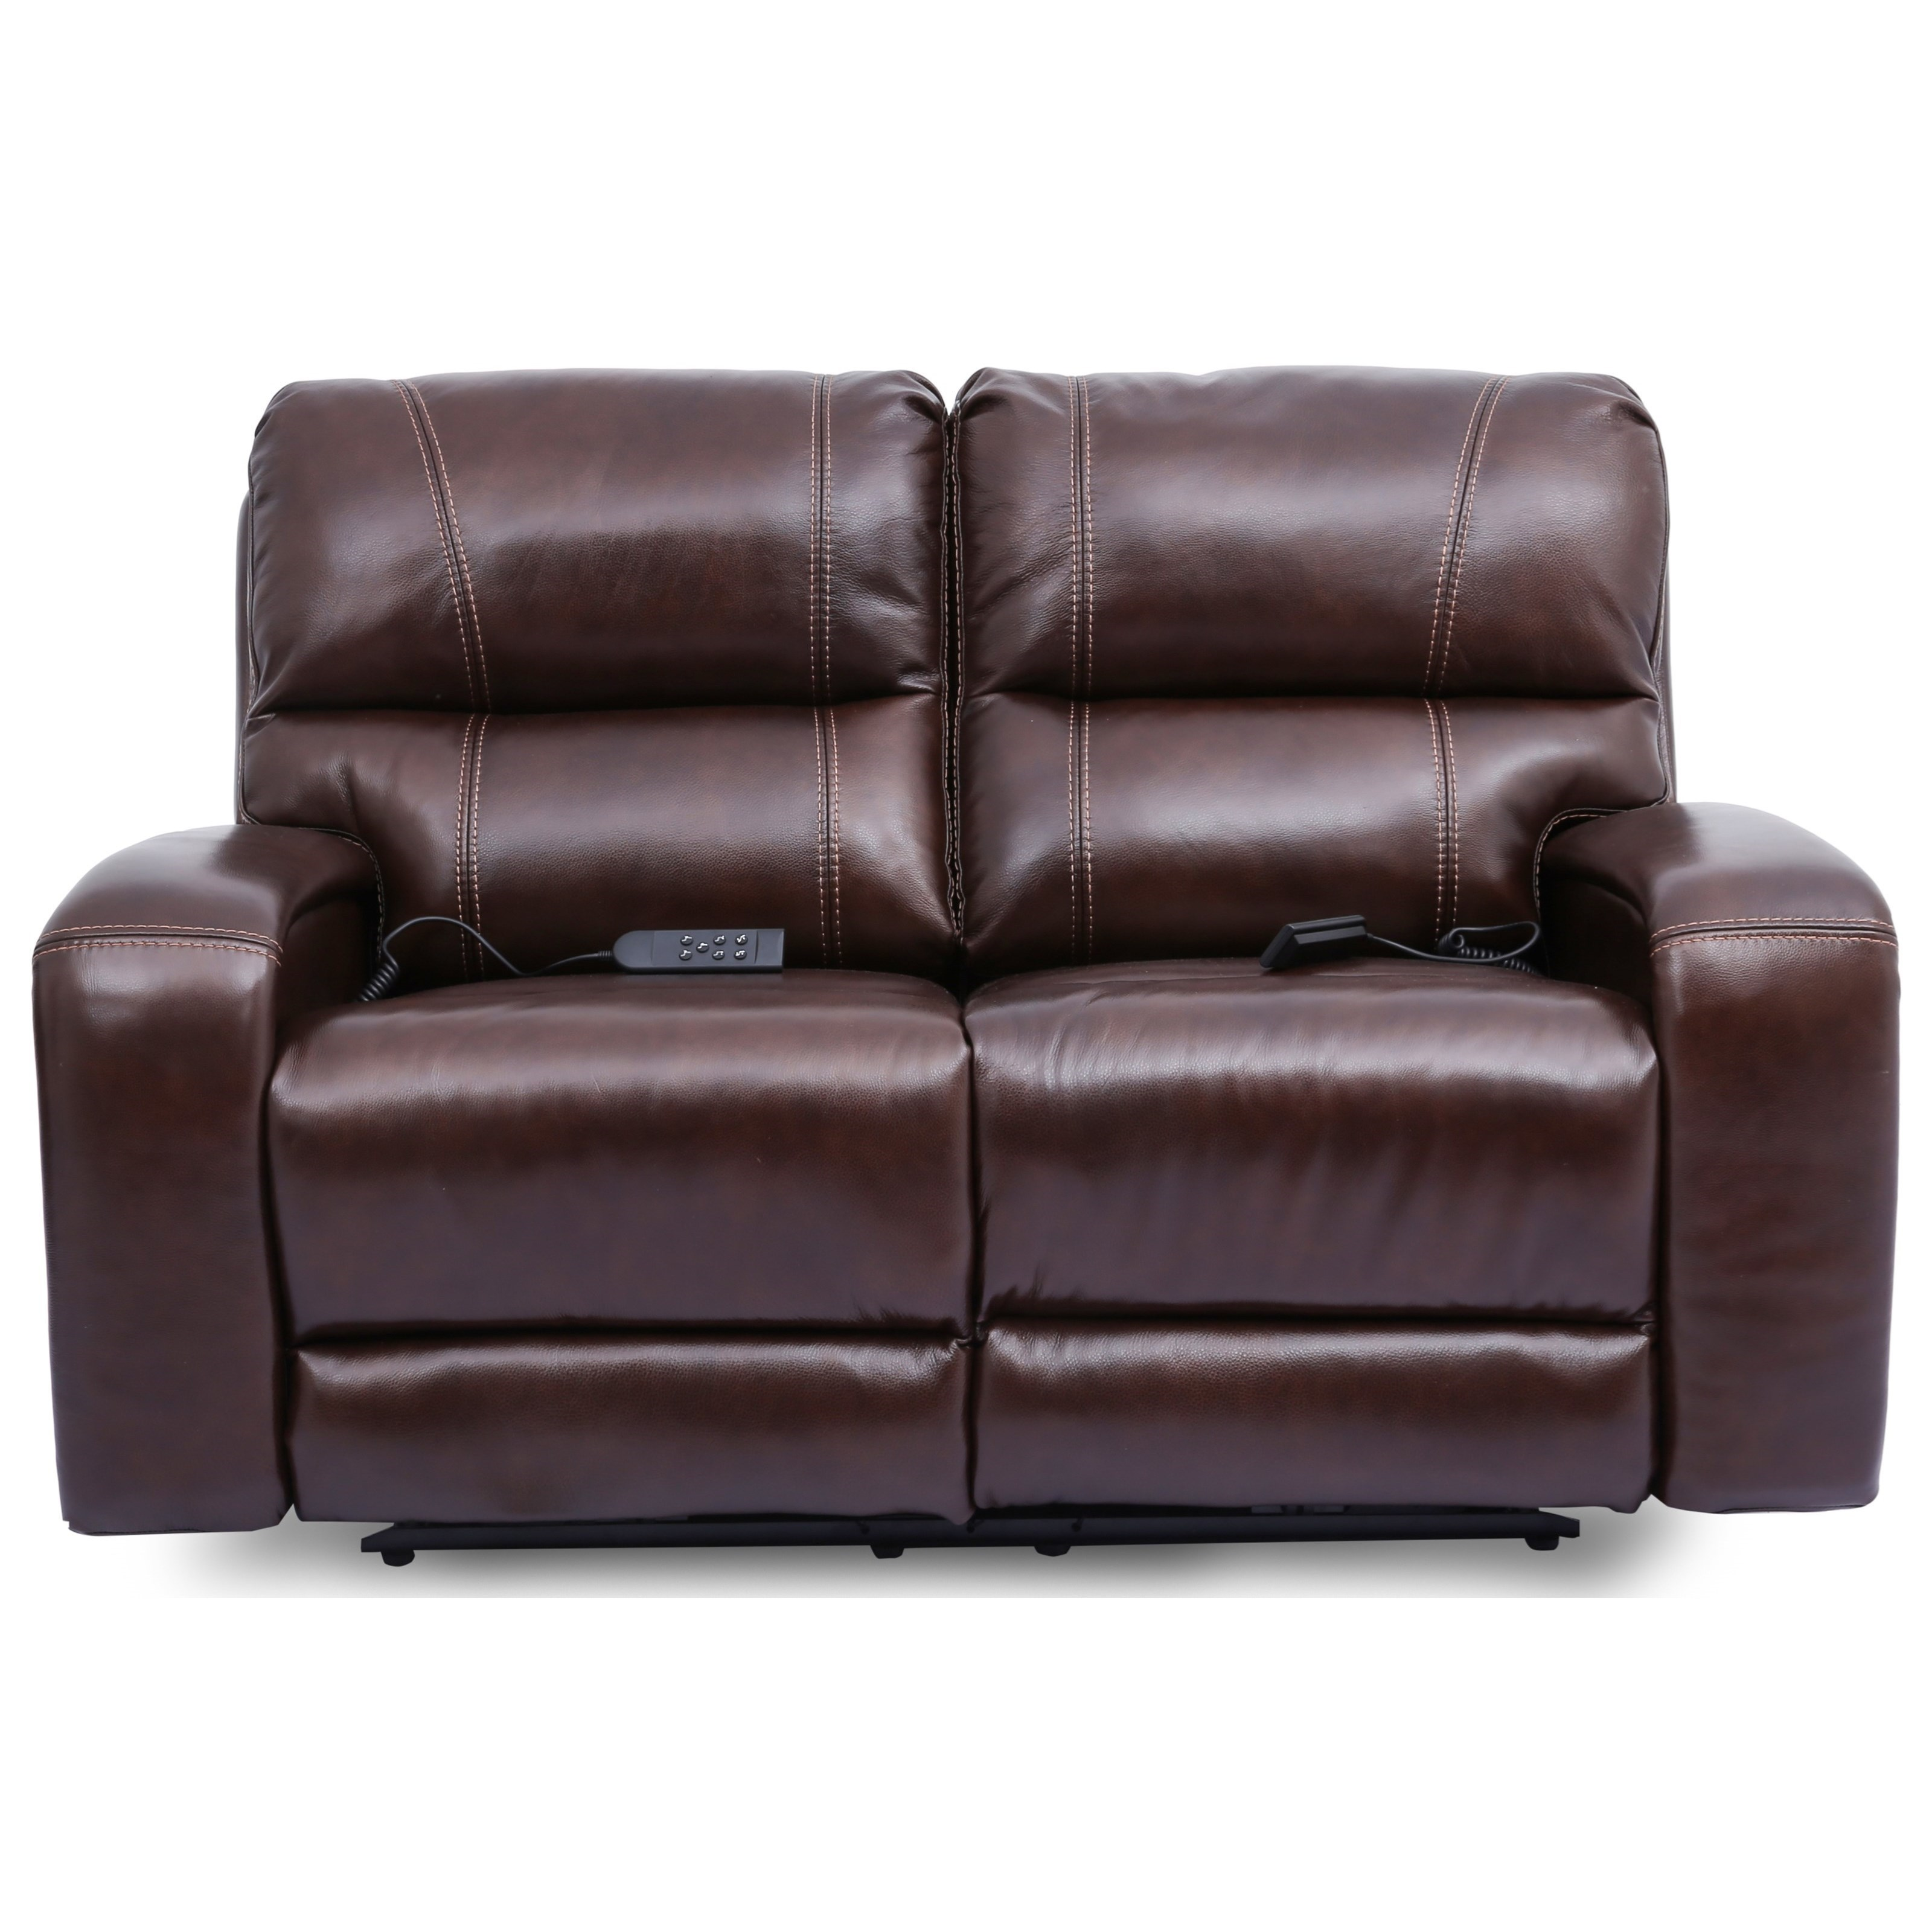 5572 Reclining Loveseat with Power Headrest by Cheers at Lagniappe Home Store